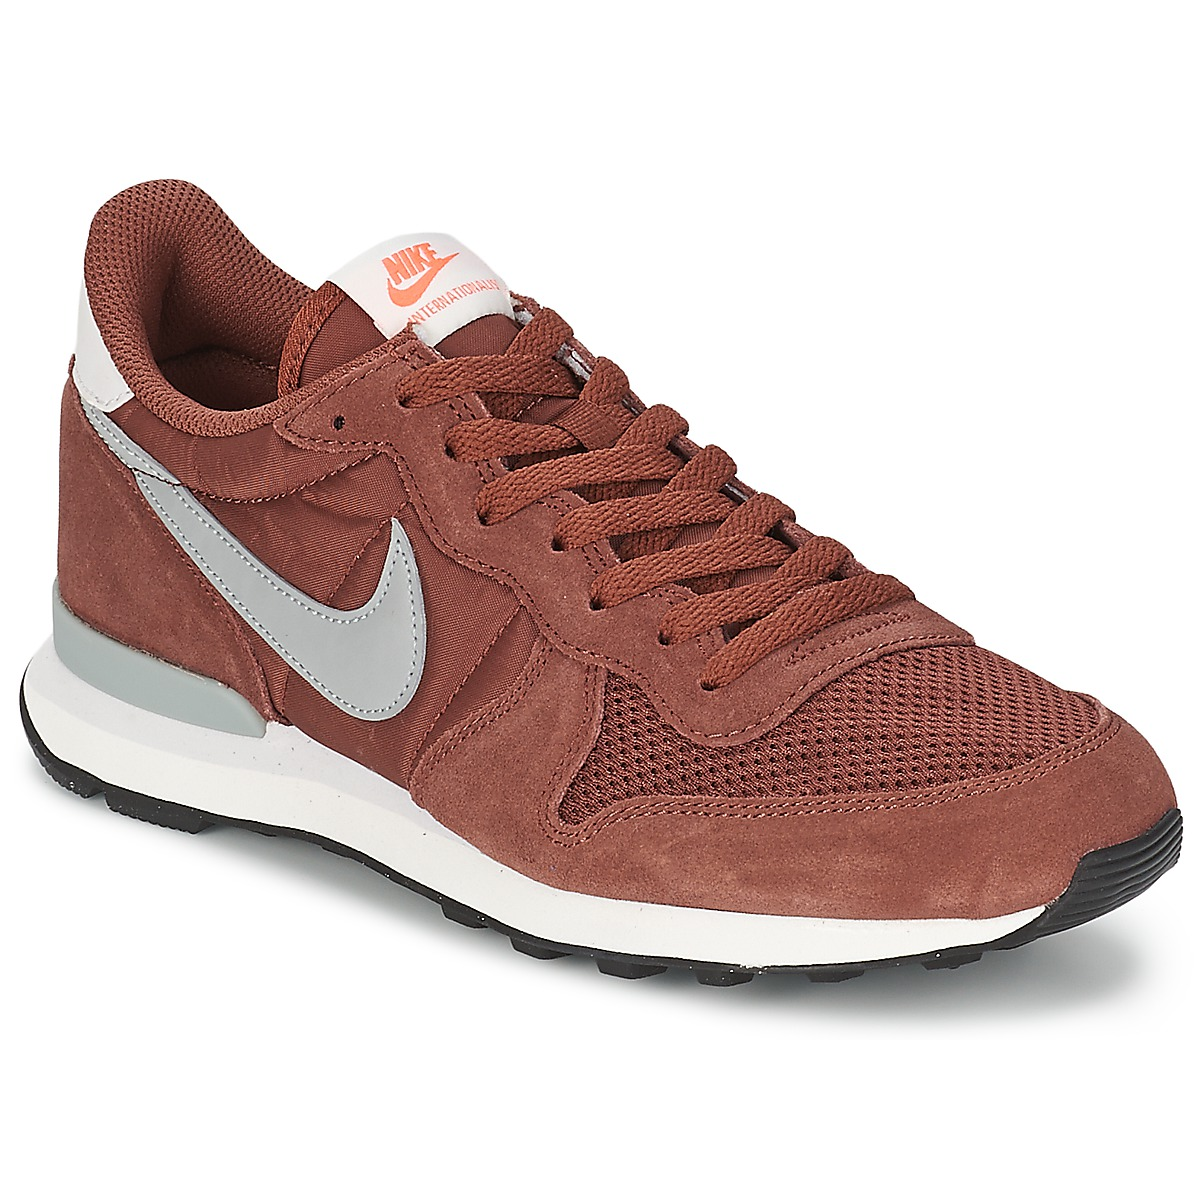 quality design 9491c 14fd0 Baskets basses Nike INTERNATIONALIST Bordeaux - Baskets Homme Spartoo   (Mode)  Spartoo Baskets basses Nike INTERNATIONALIST Bordeaux Baskets  basses Nike ...